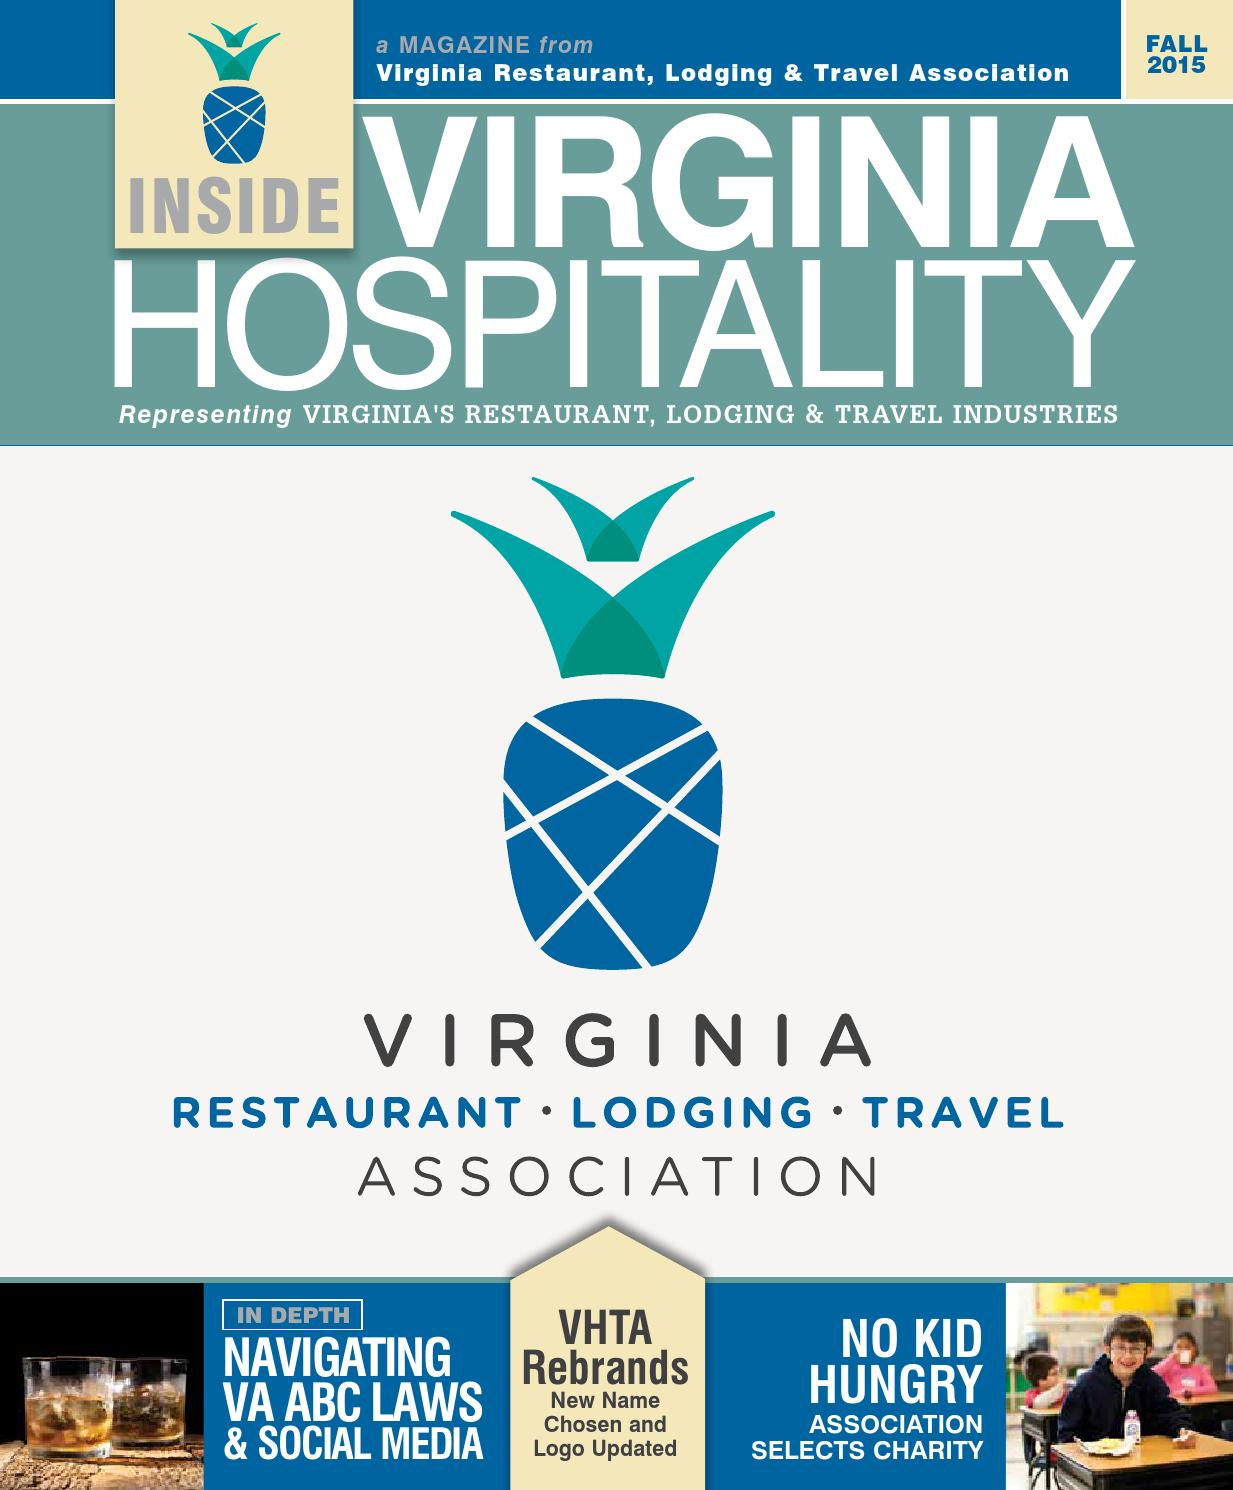 Virginia Restaurant, Lodging & Travel Association Fall